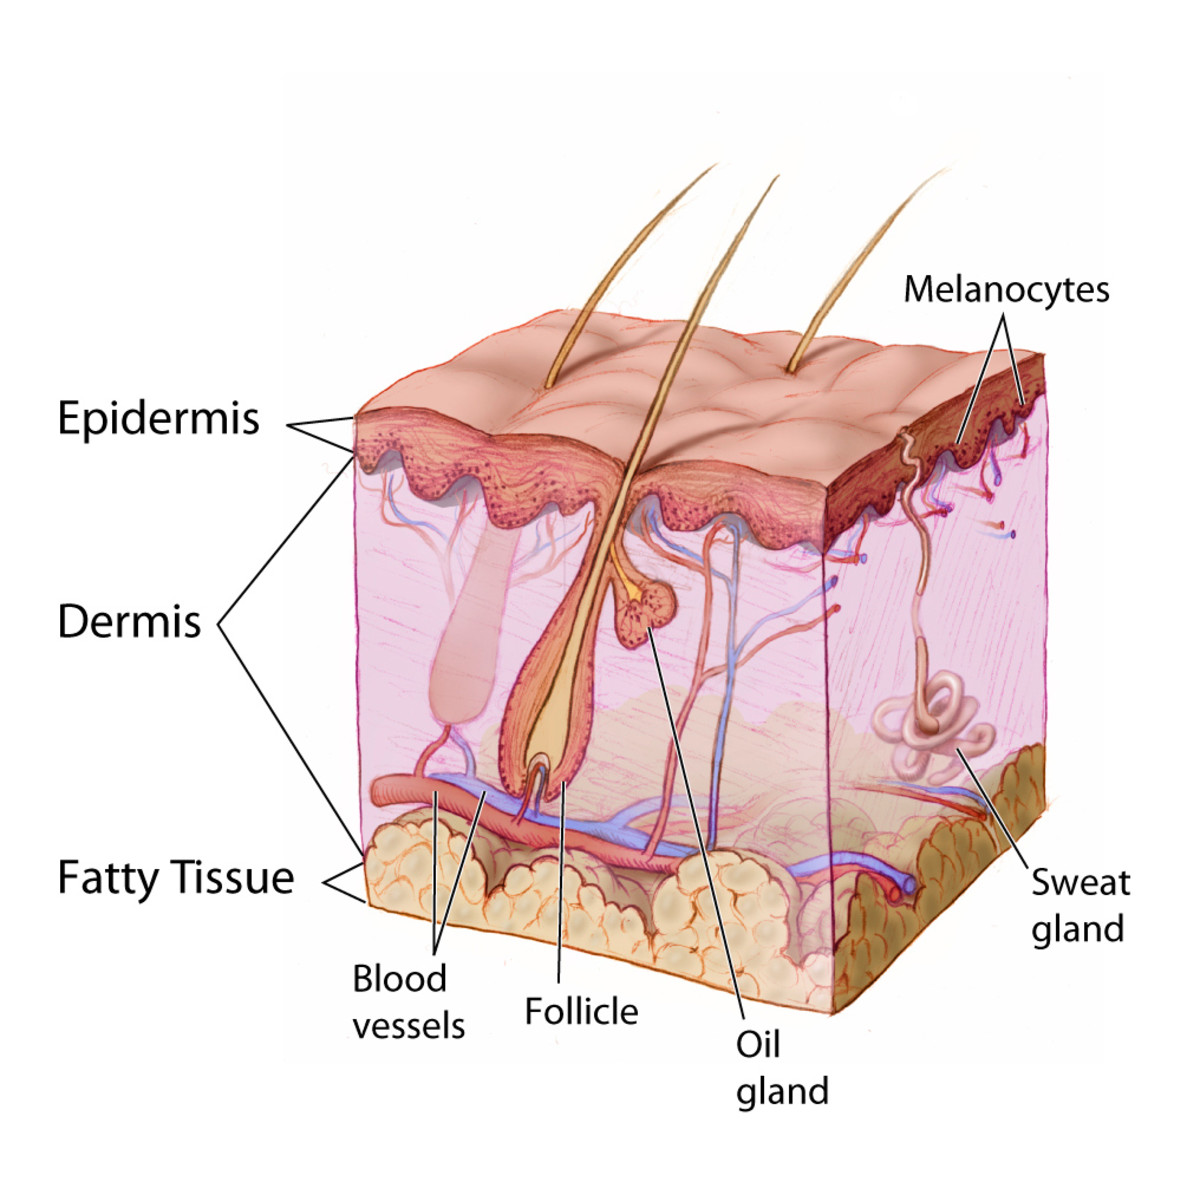 Anatomy of the skin, showing dermis and epidermis